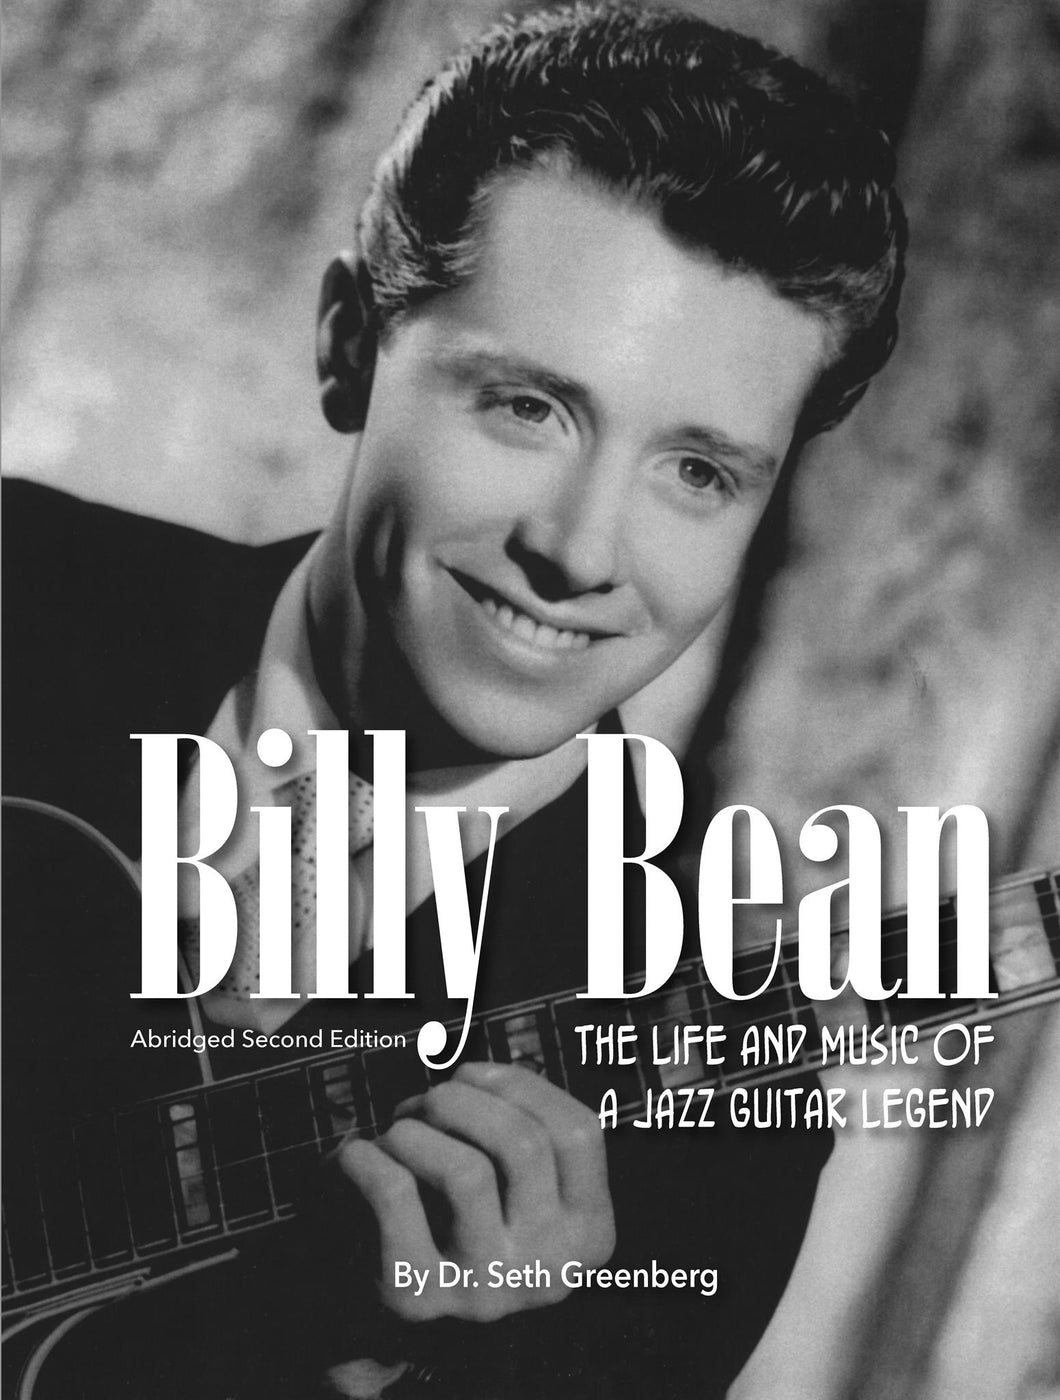 Billy Bean: The Life and Music of a Jazz Guitar Legend (Abridged eBook Edition)